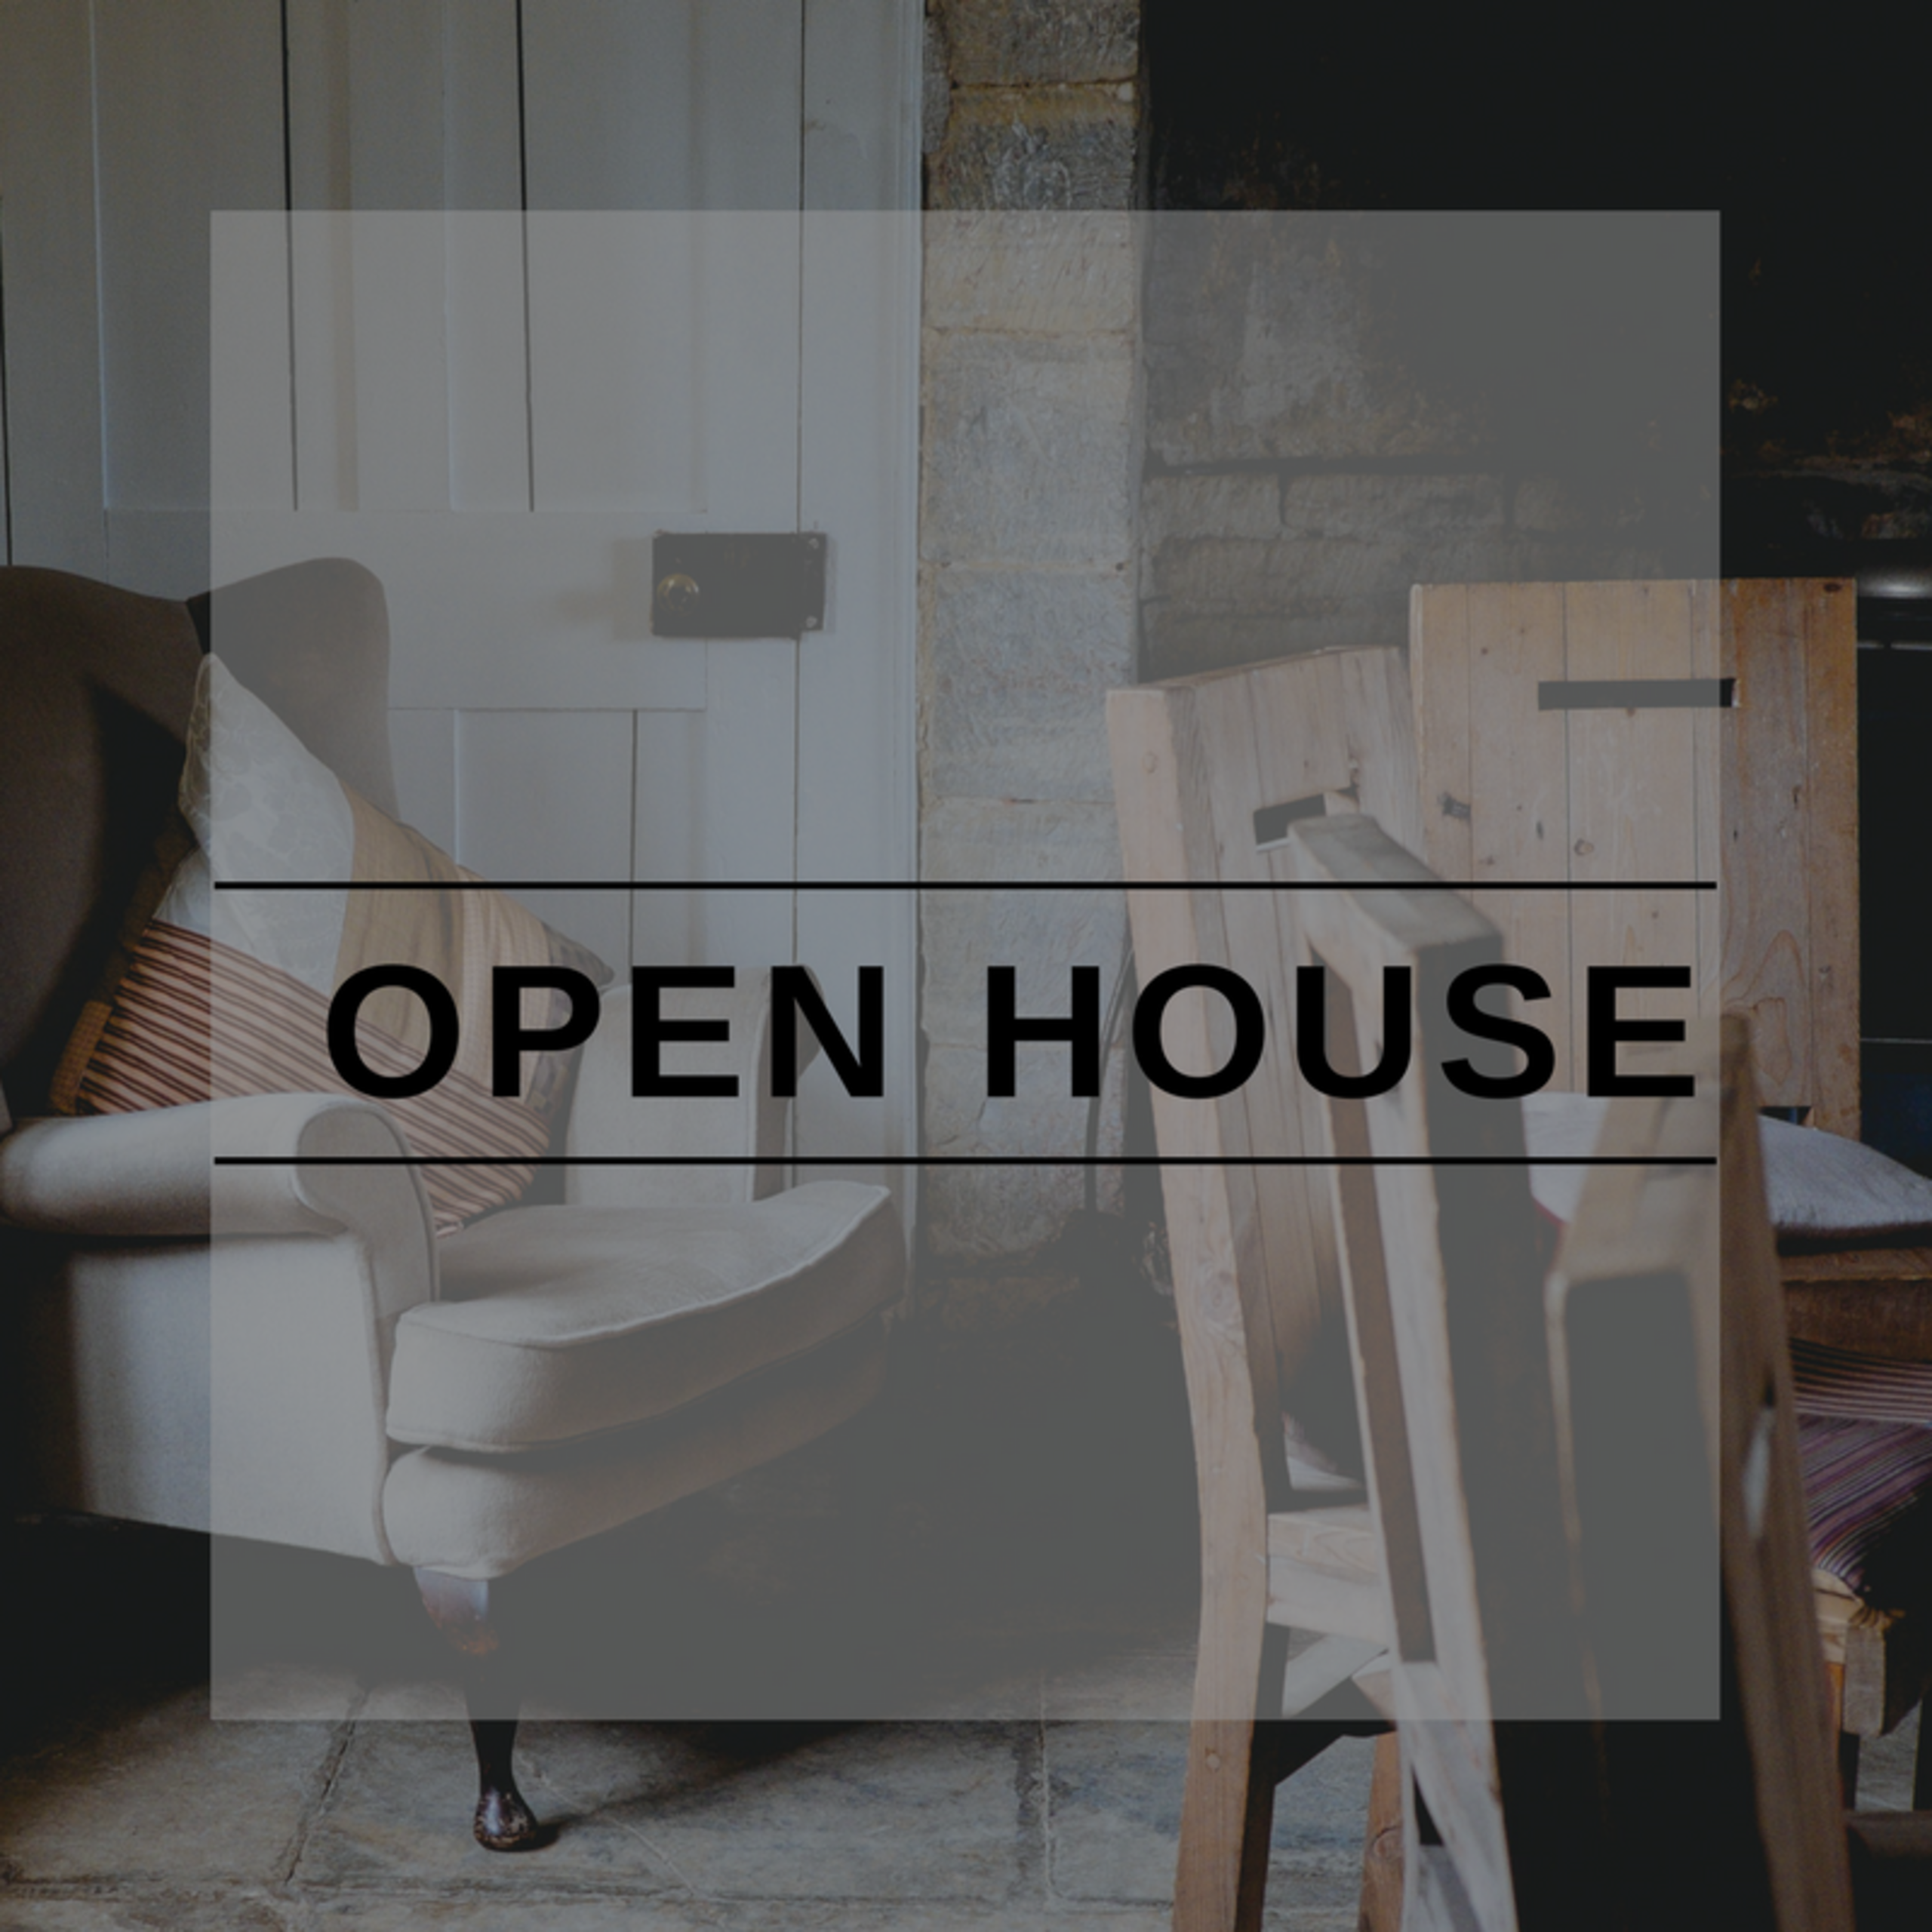 OPEN HOUSE LIST 2/10/18 – 2/11/18